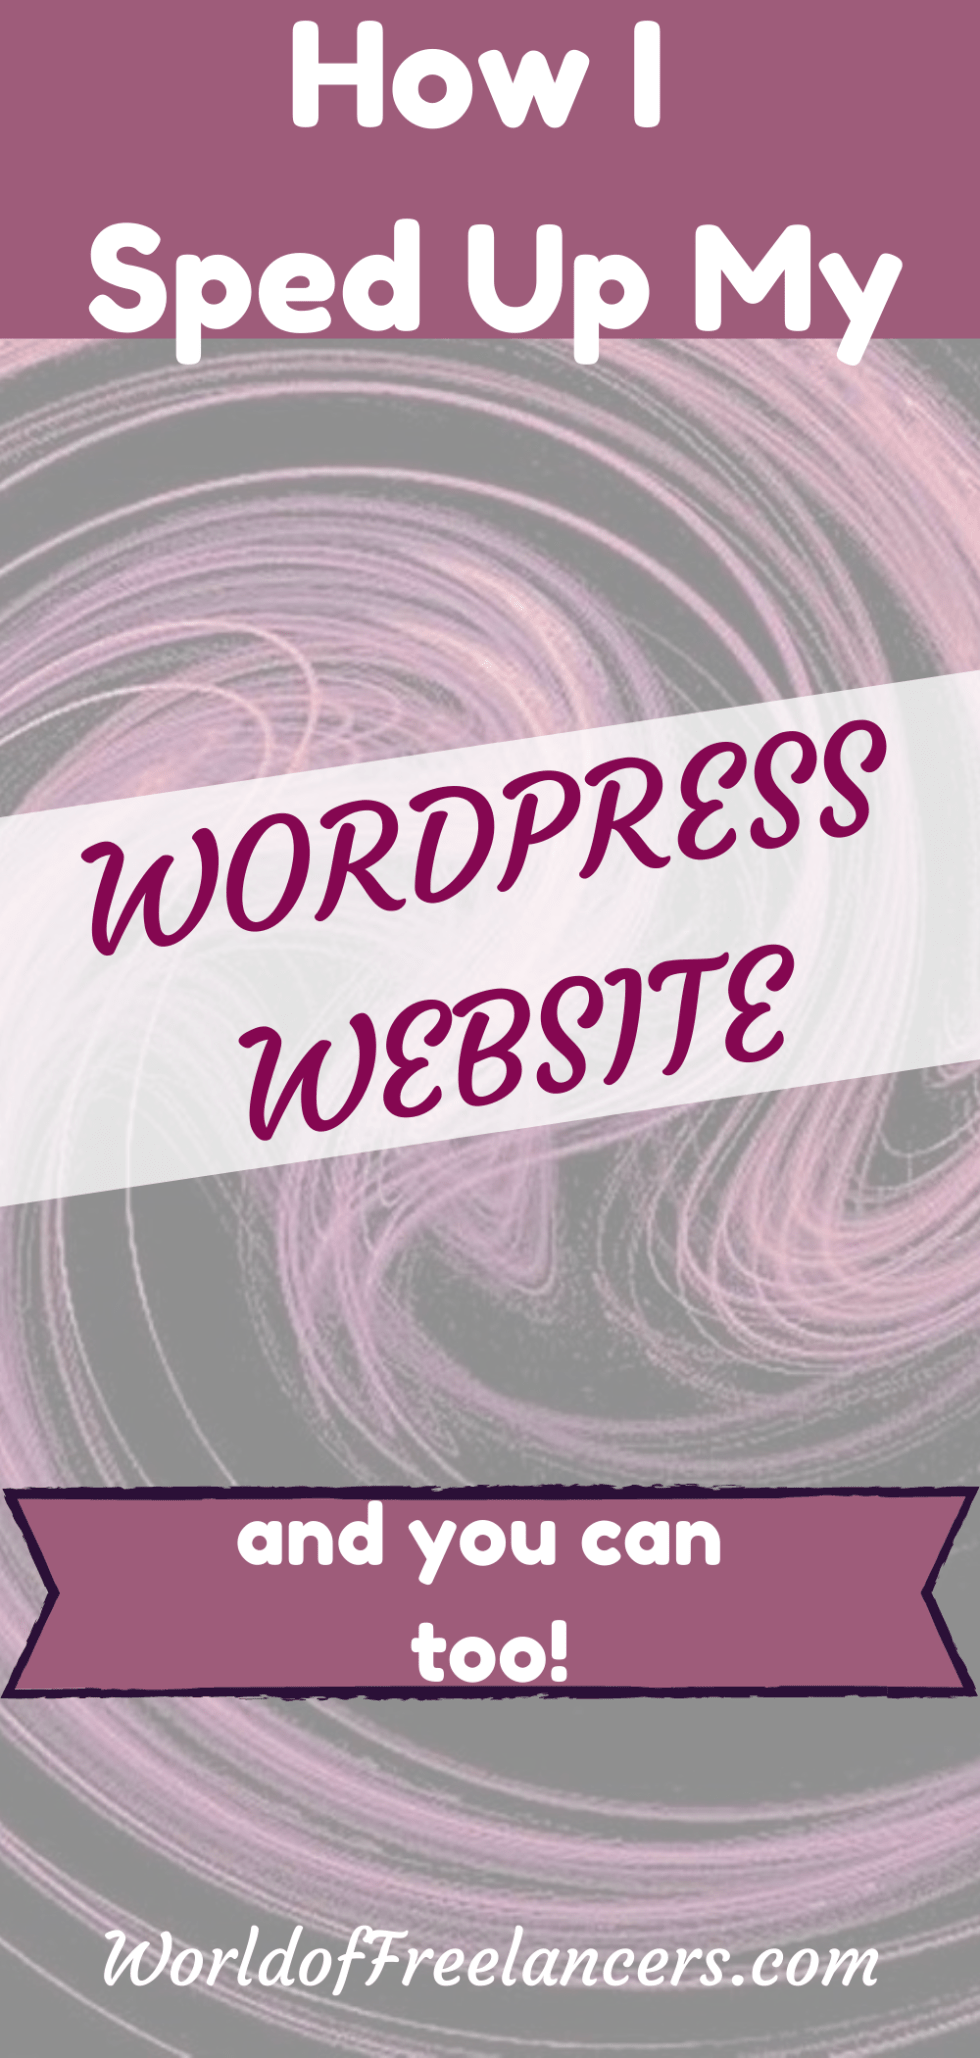 How I sped up my WordPress website and you can too